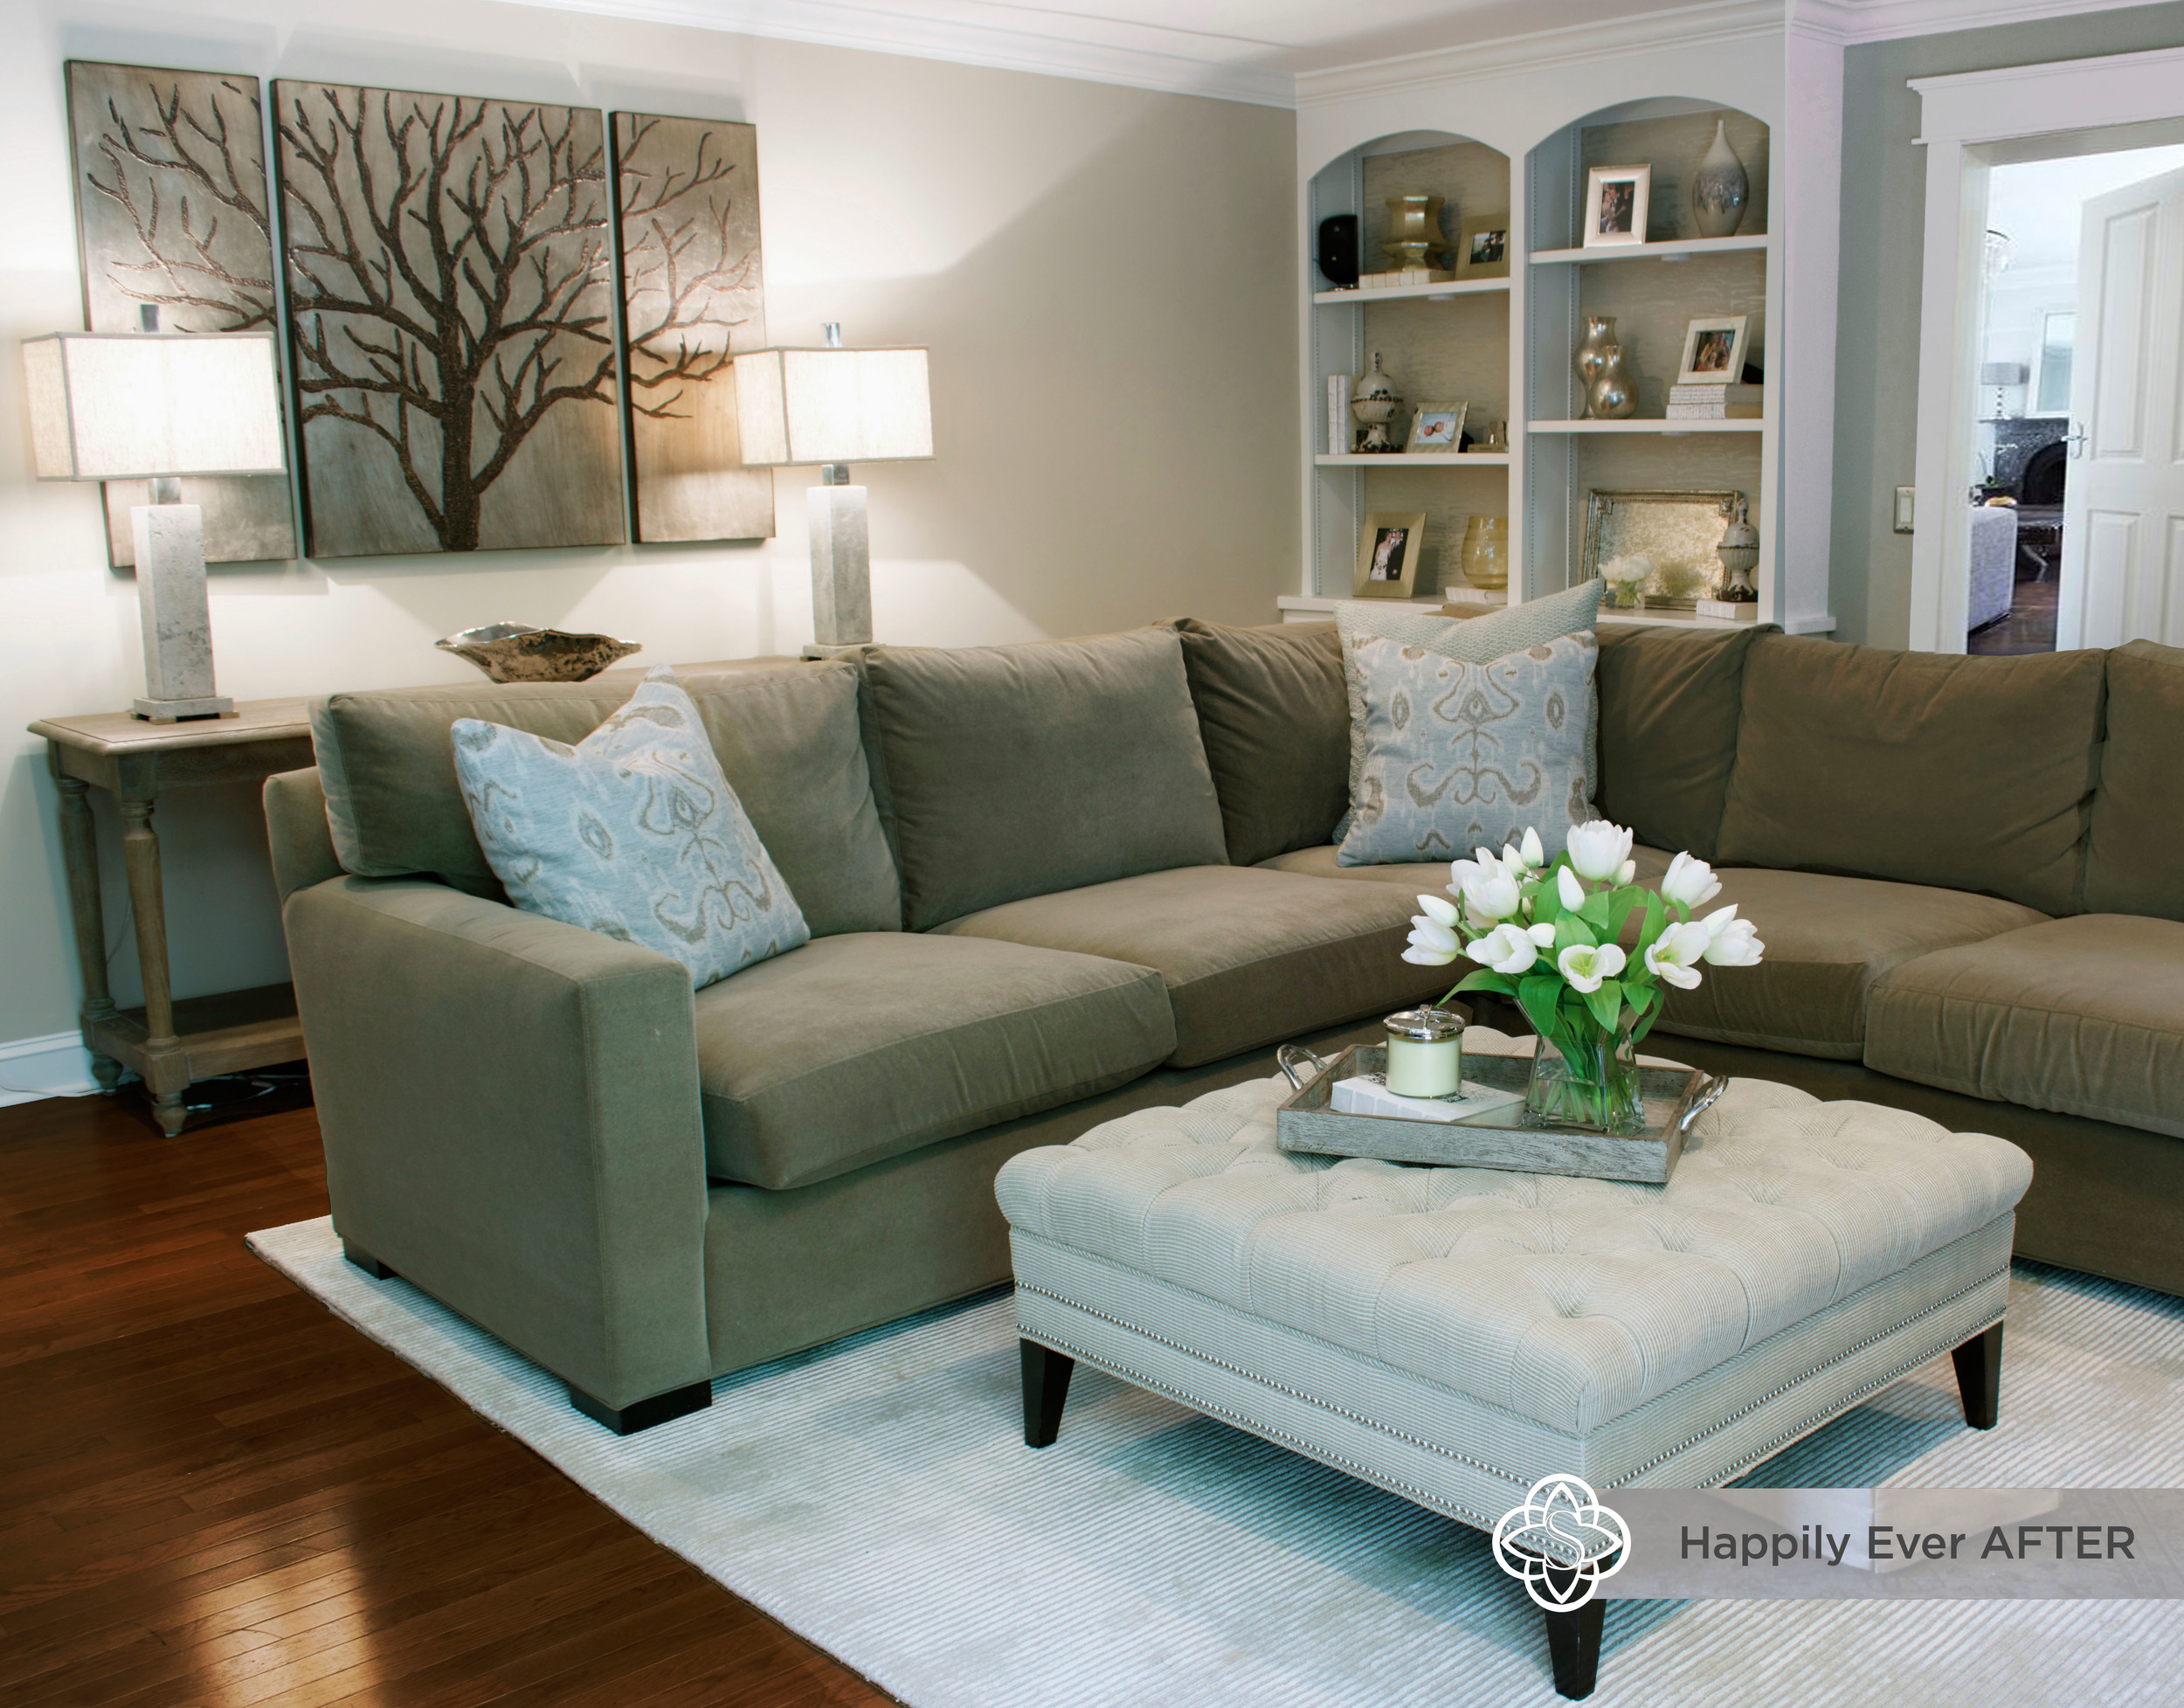 FAMILY ROOM AFTER.jpg